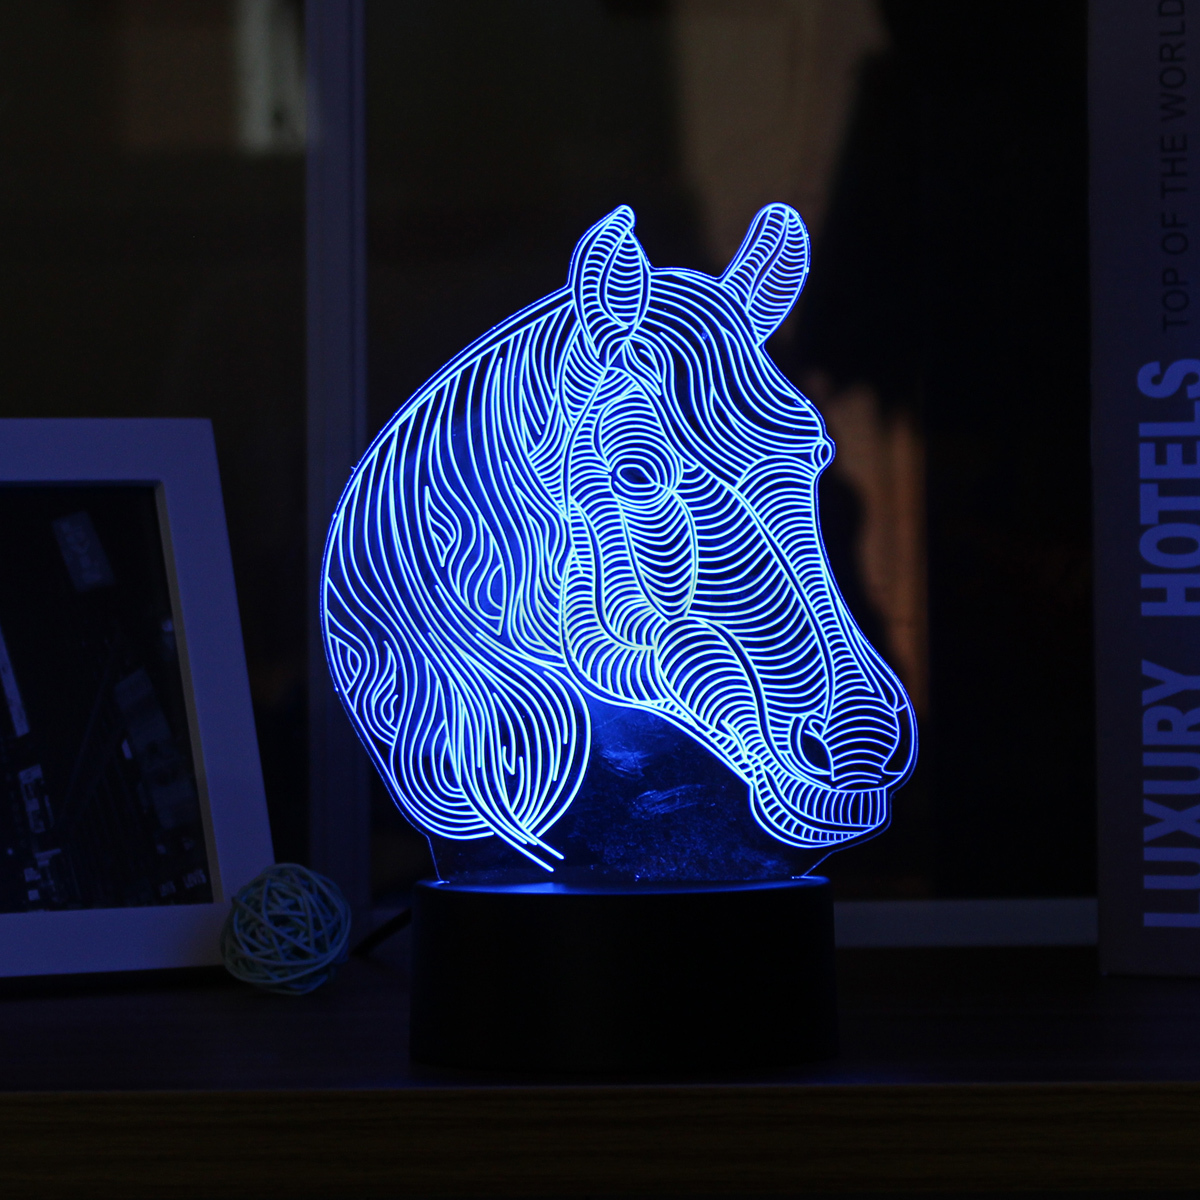 3d led night light color change panel remote control bluetooth table desk lamp ebay - Remote control night light ...